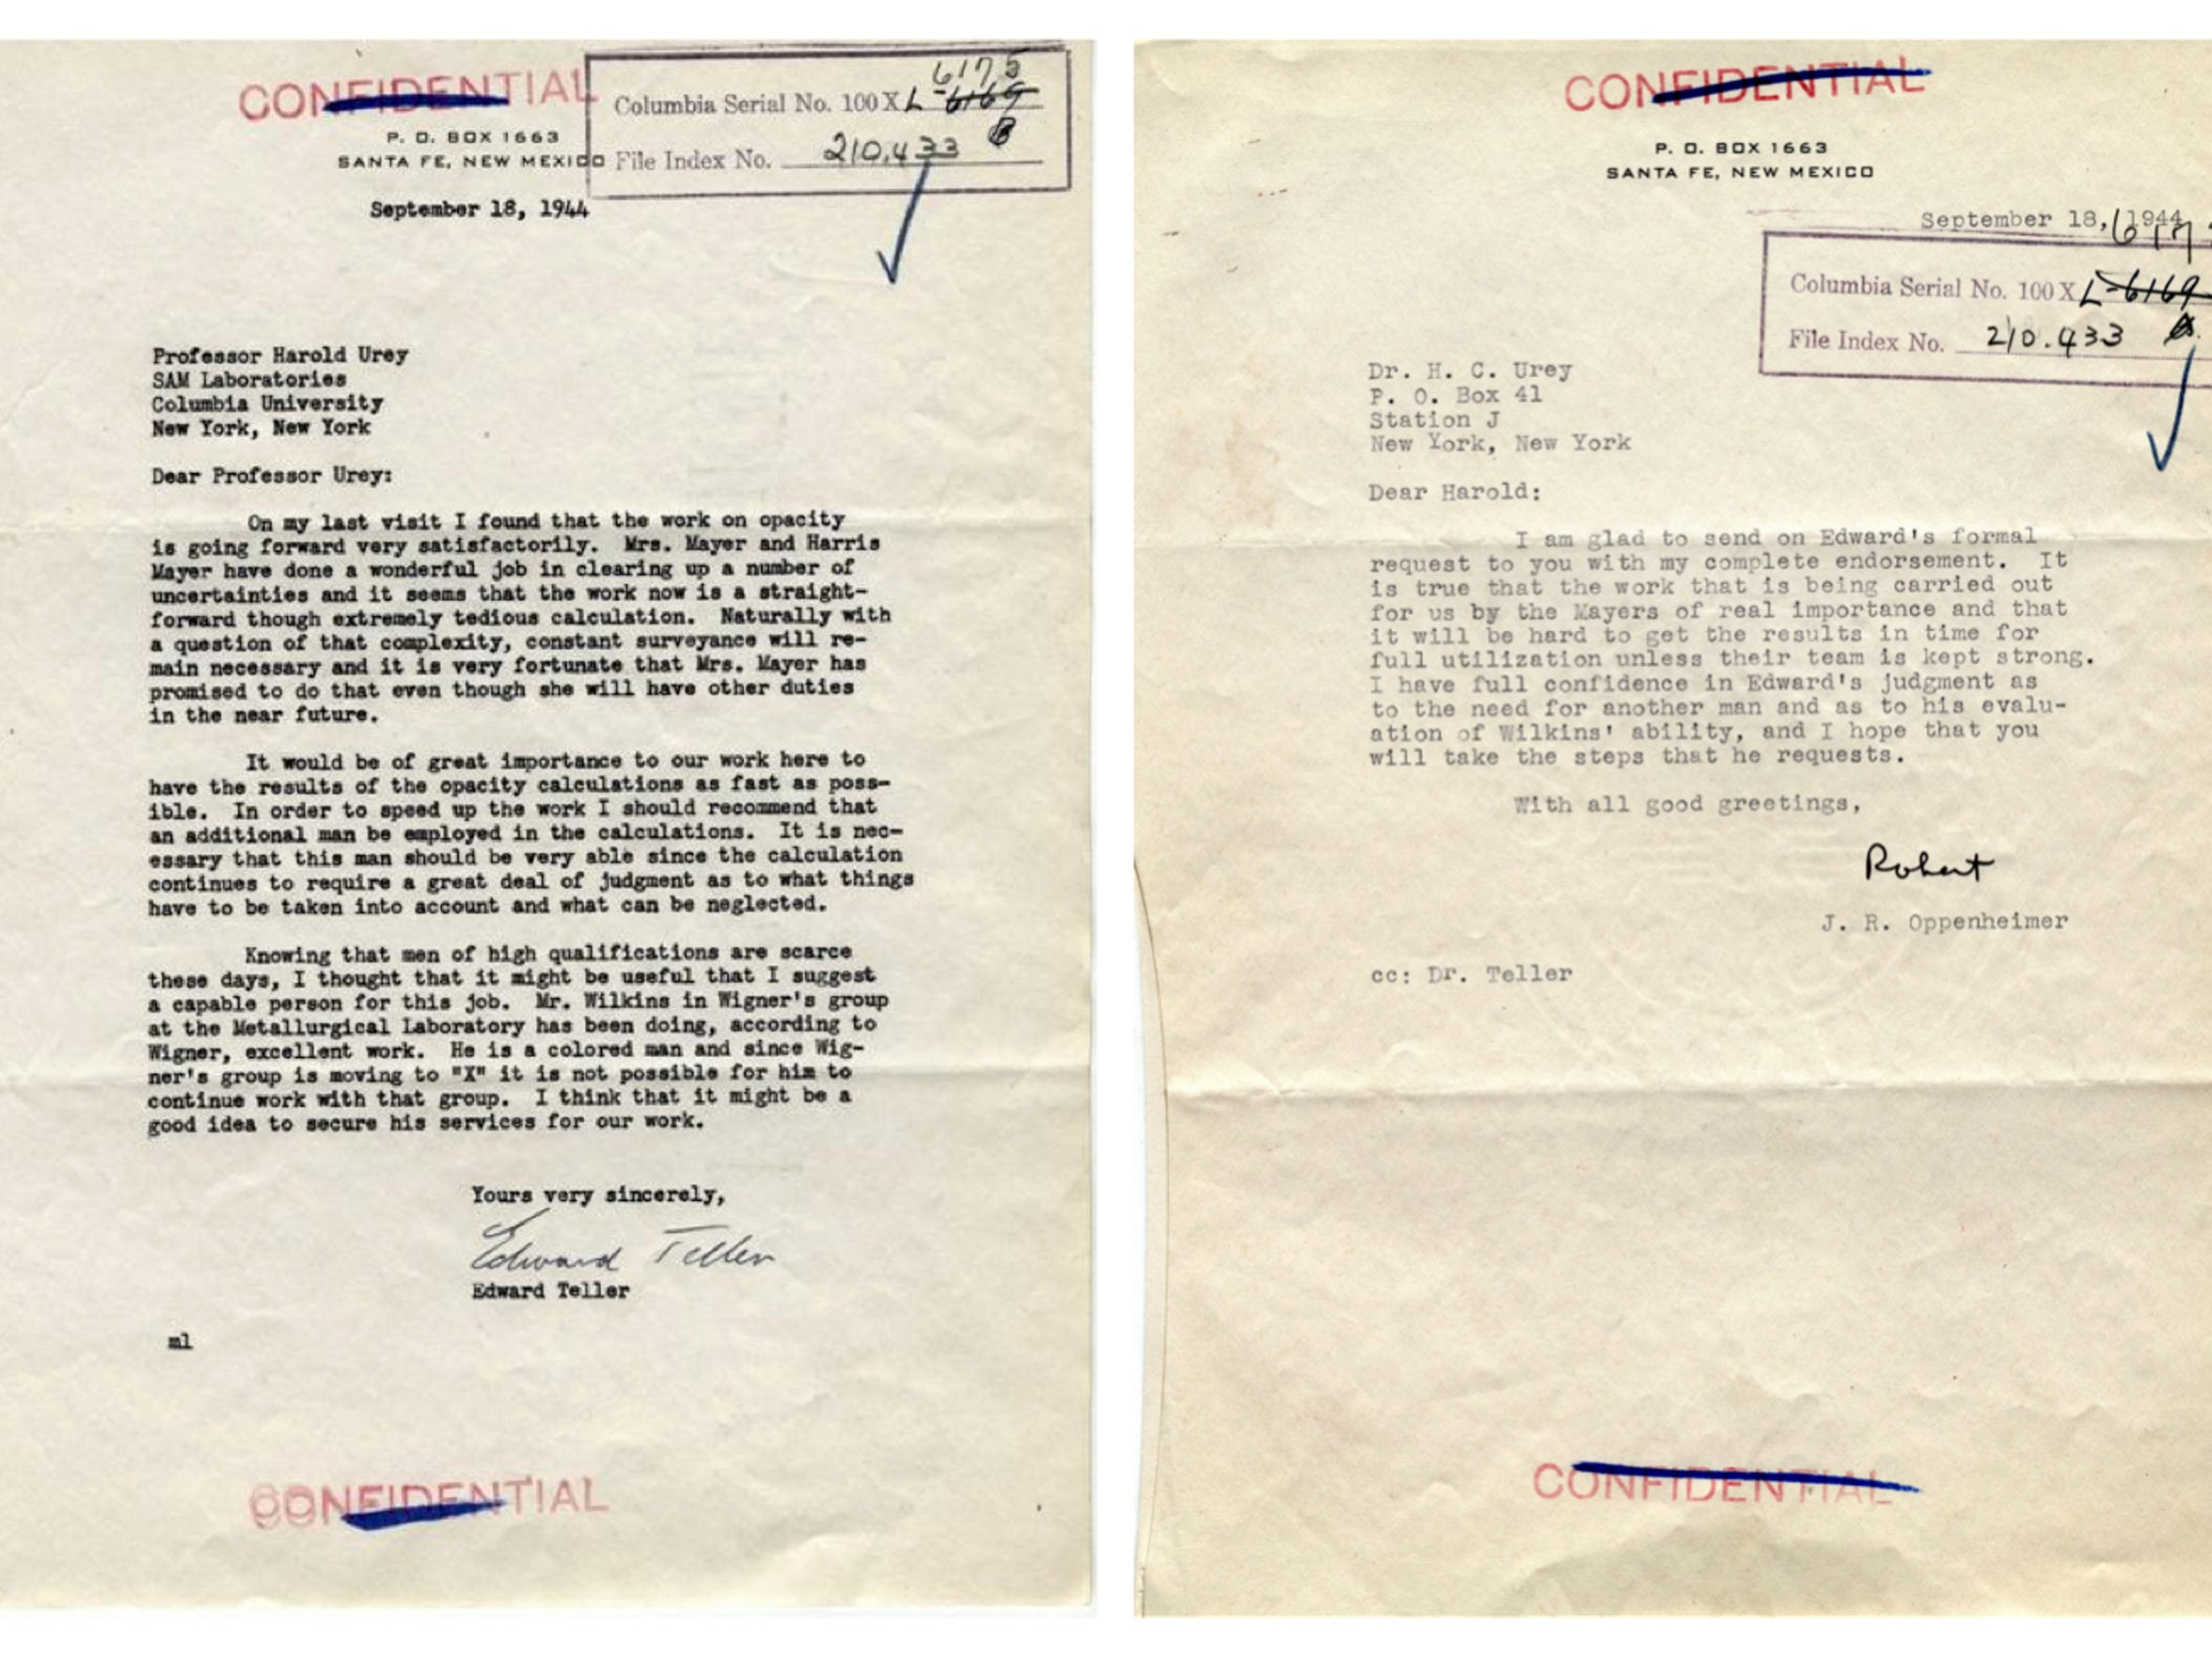 Edward Teller wrote to War Research Director Harold